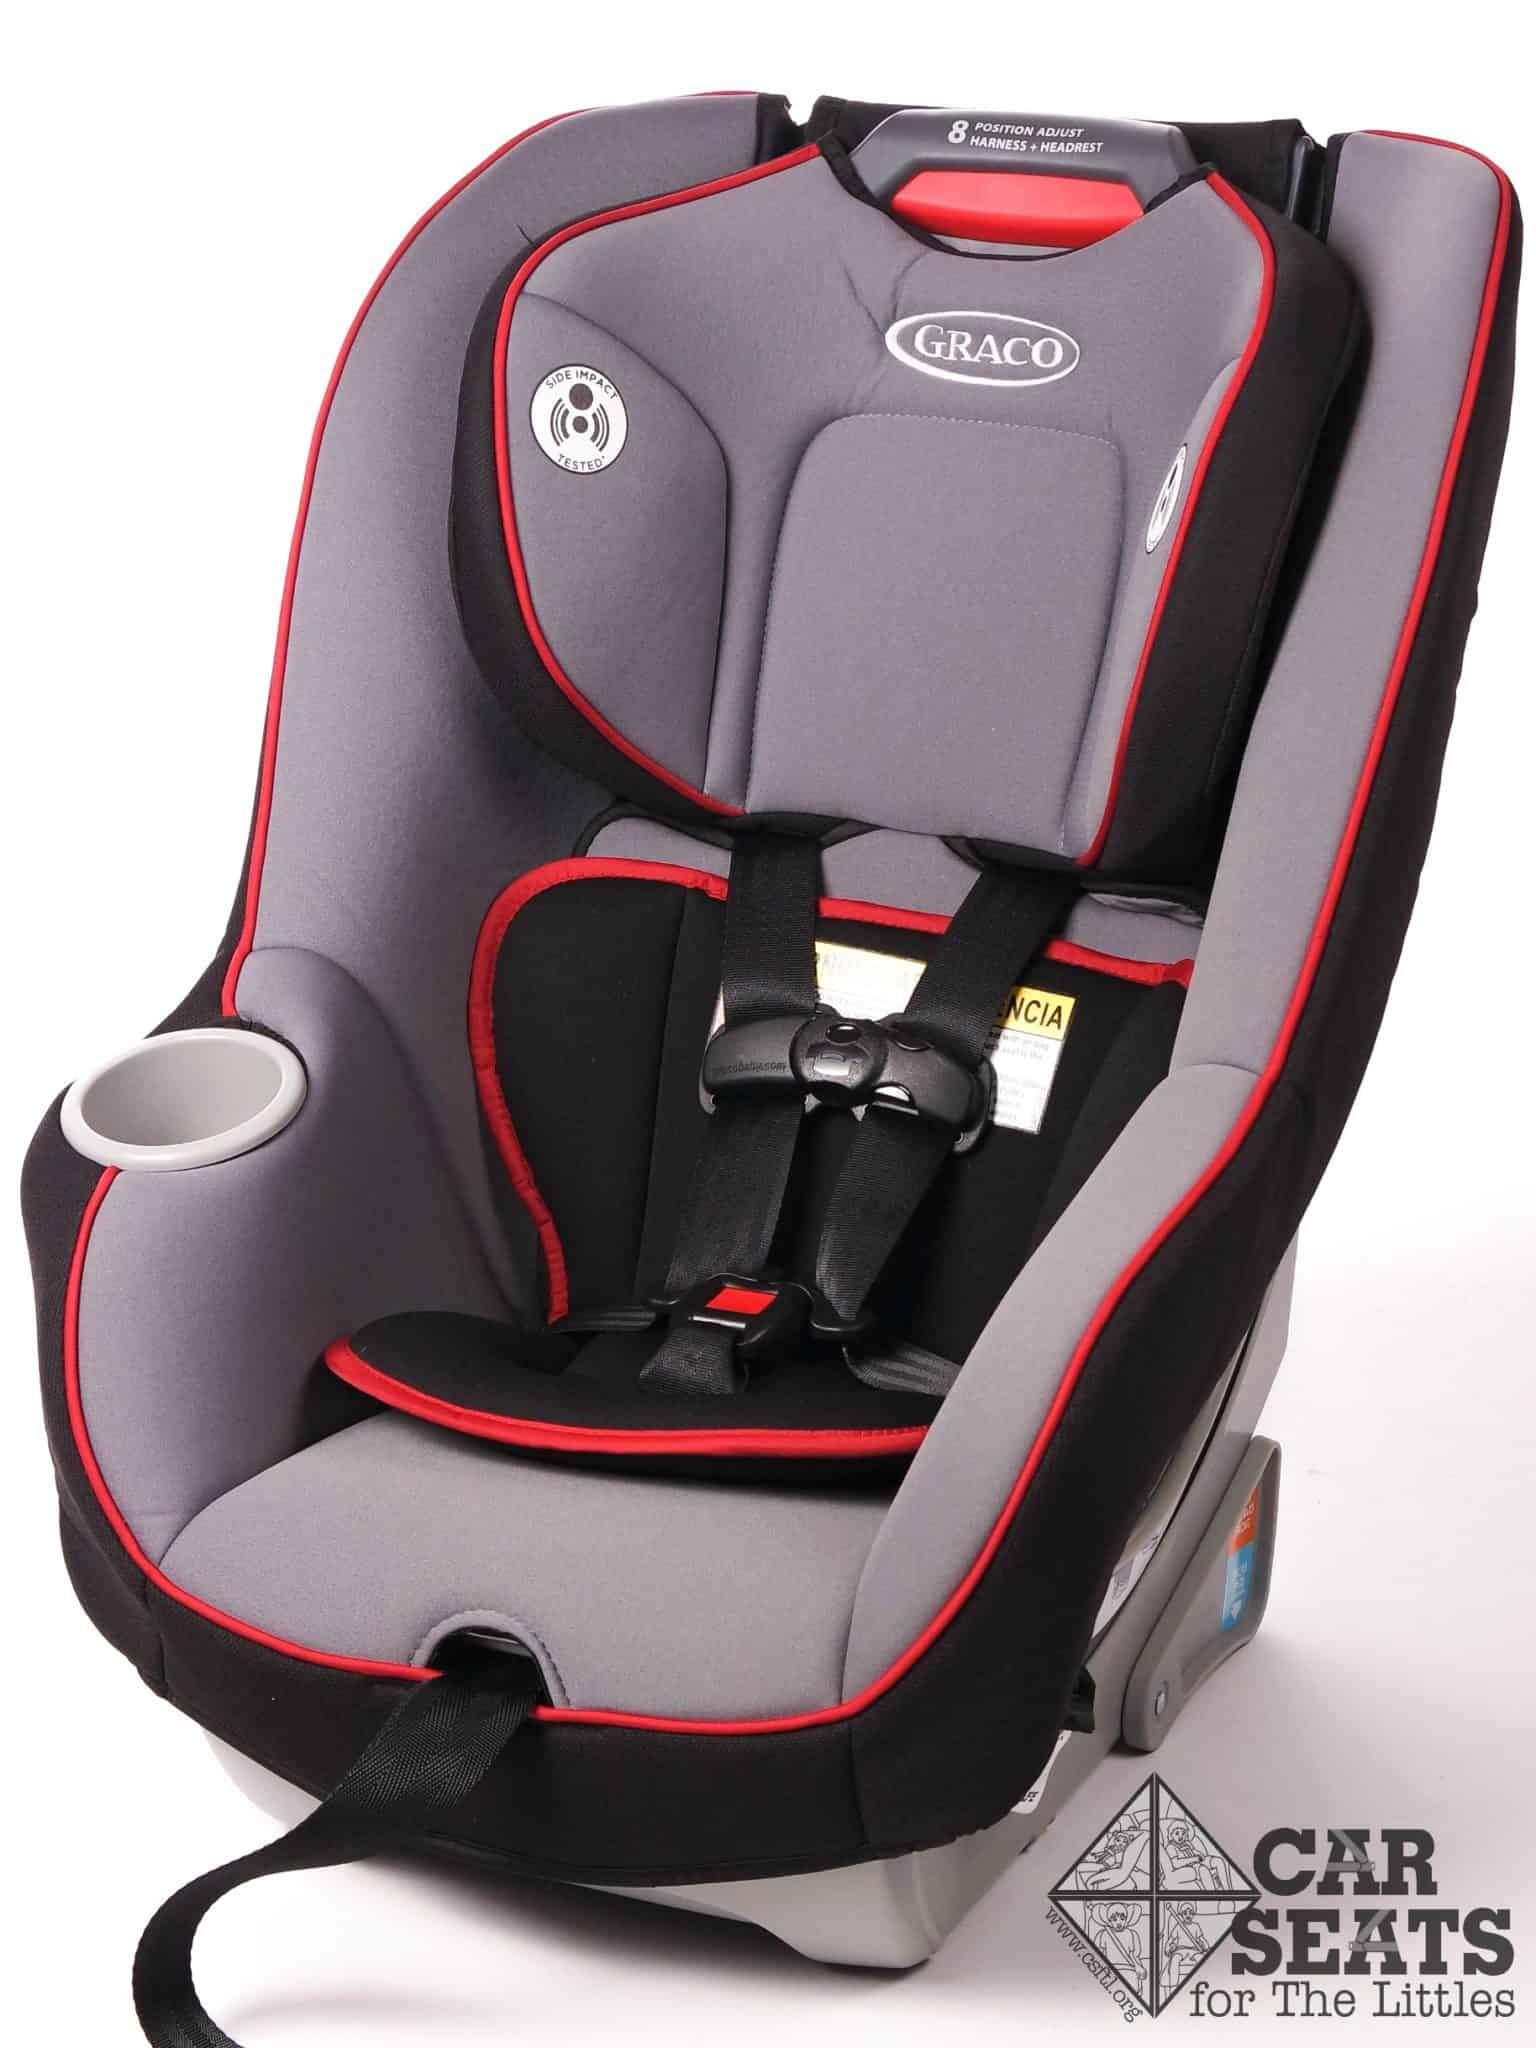 Graco Contender Review Car Seats For The Littles